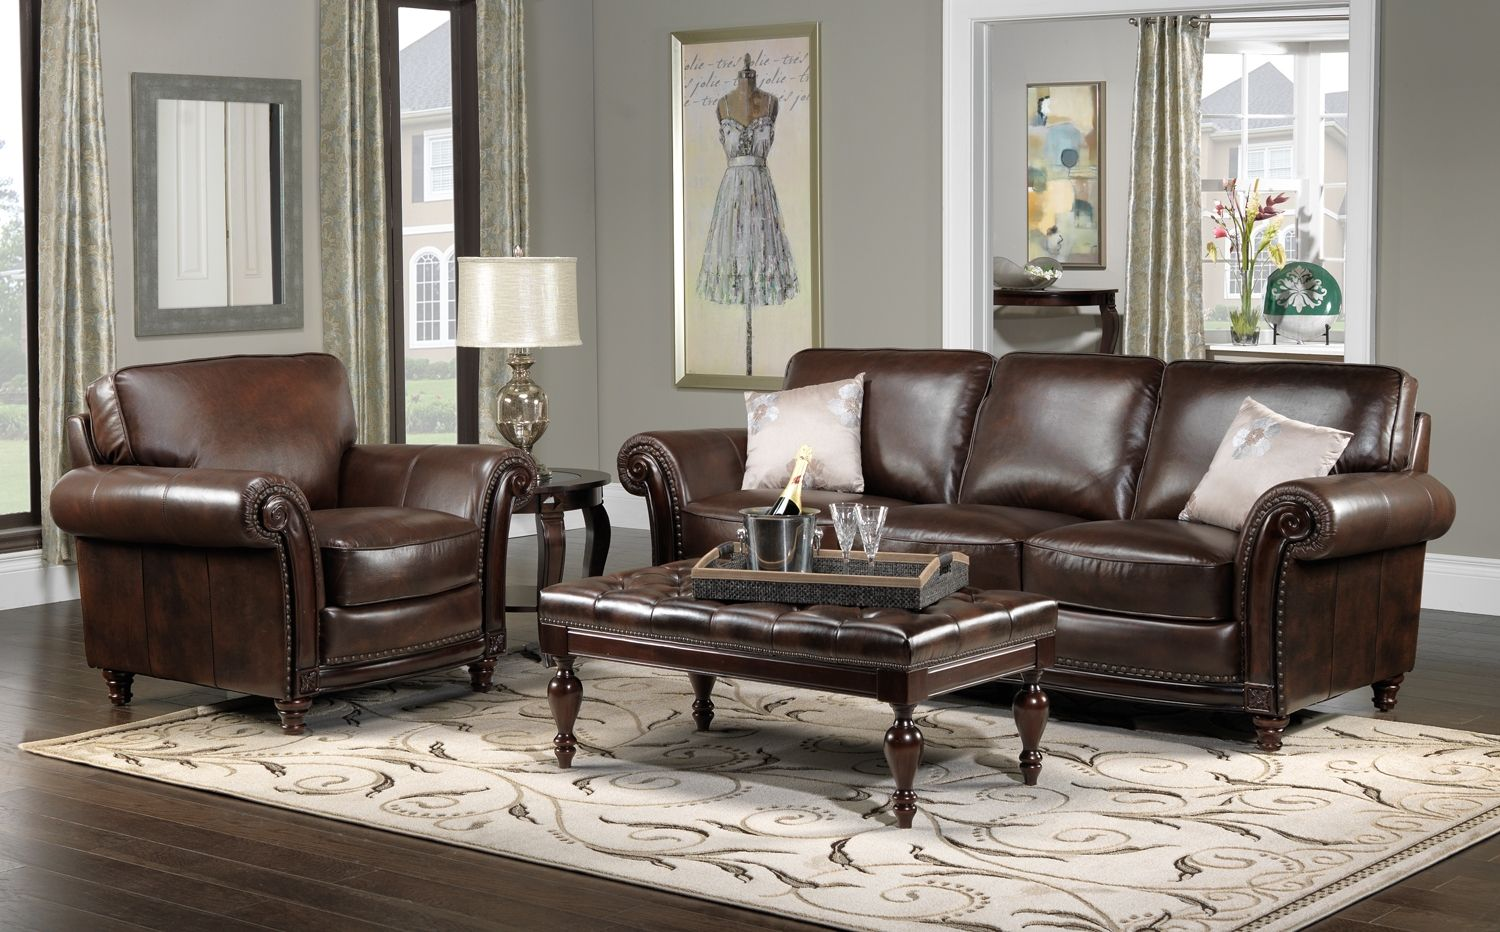 Dream house decor ideas for brown leather furniture gngkxz for Living room suites furniture